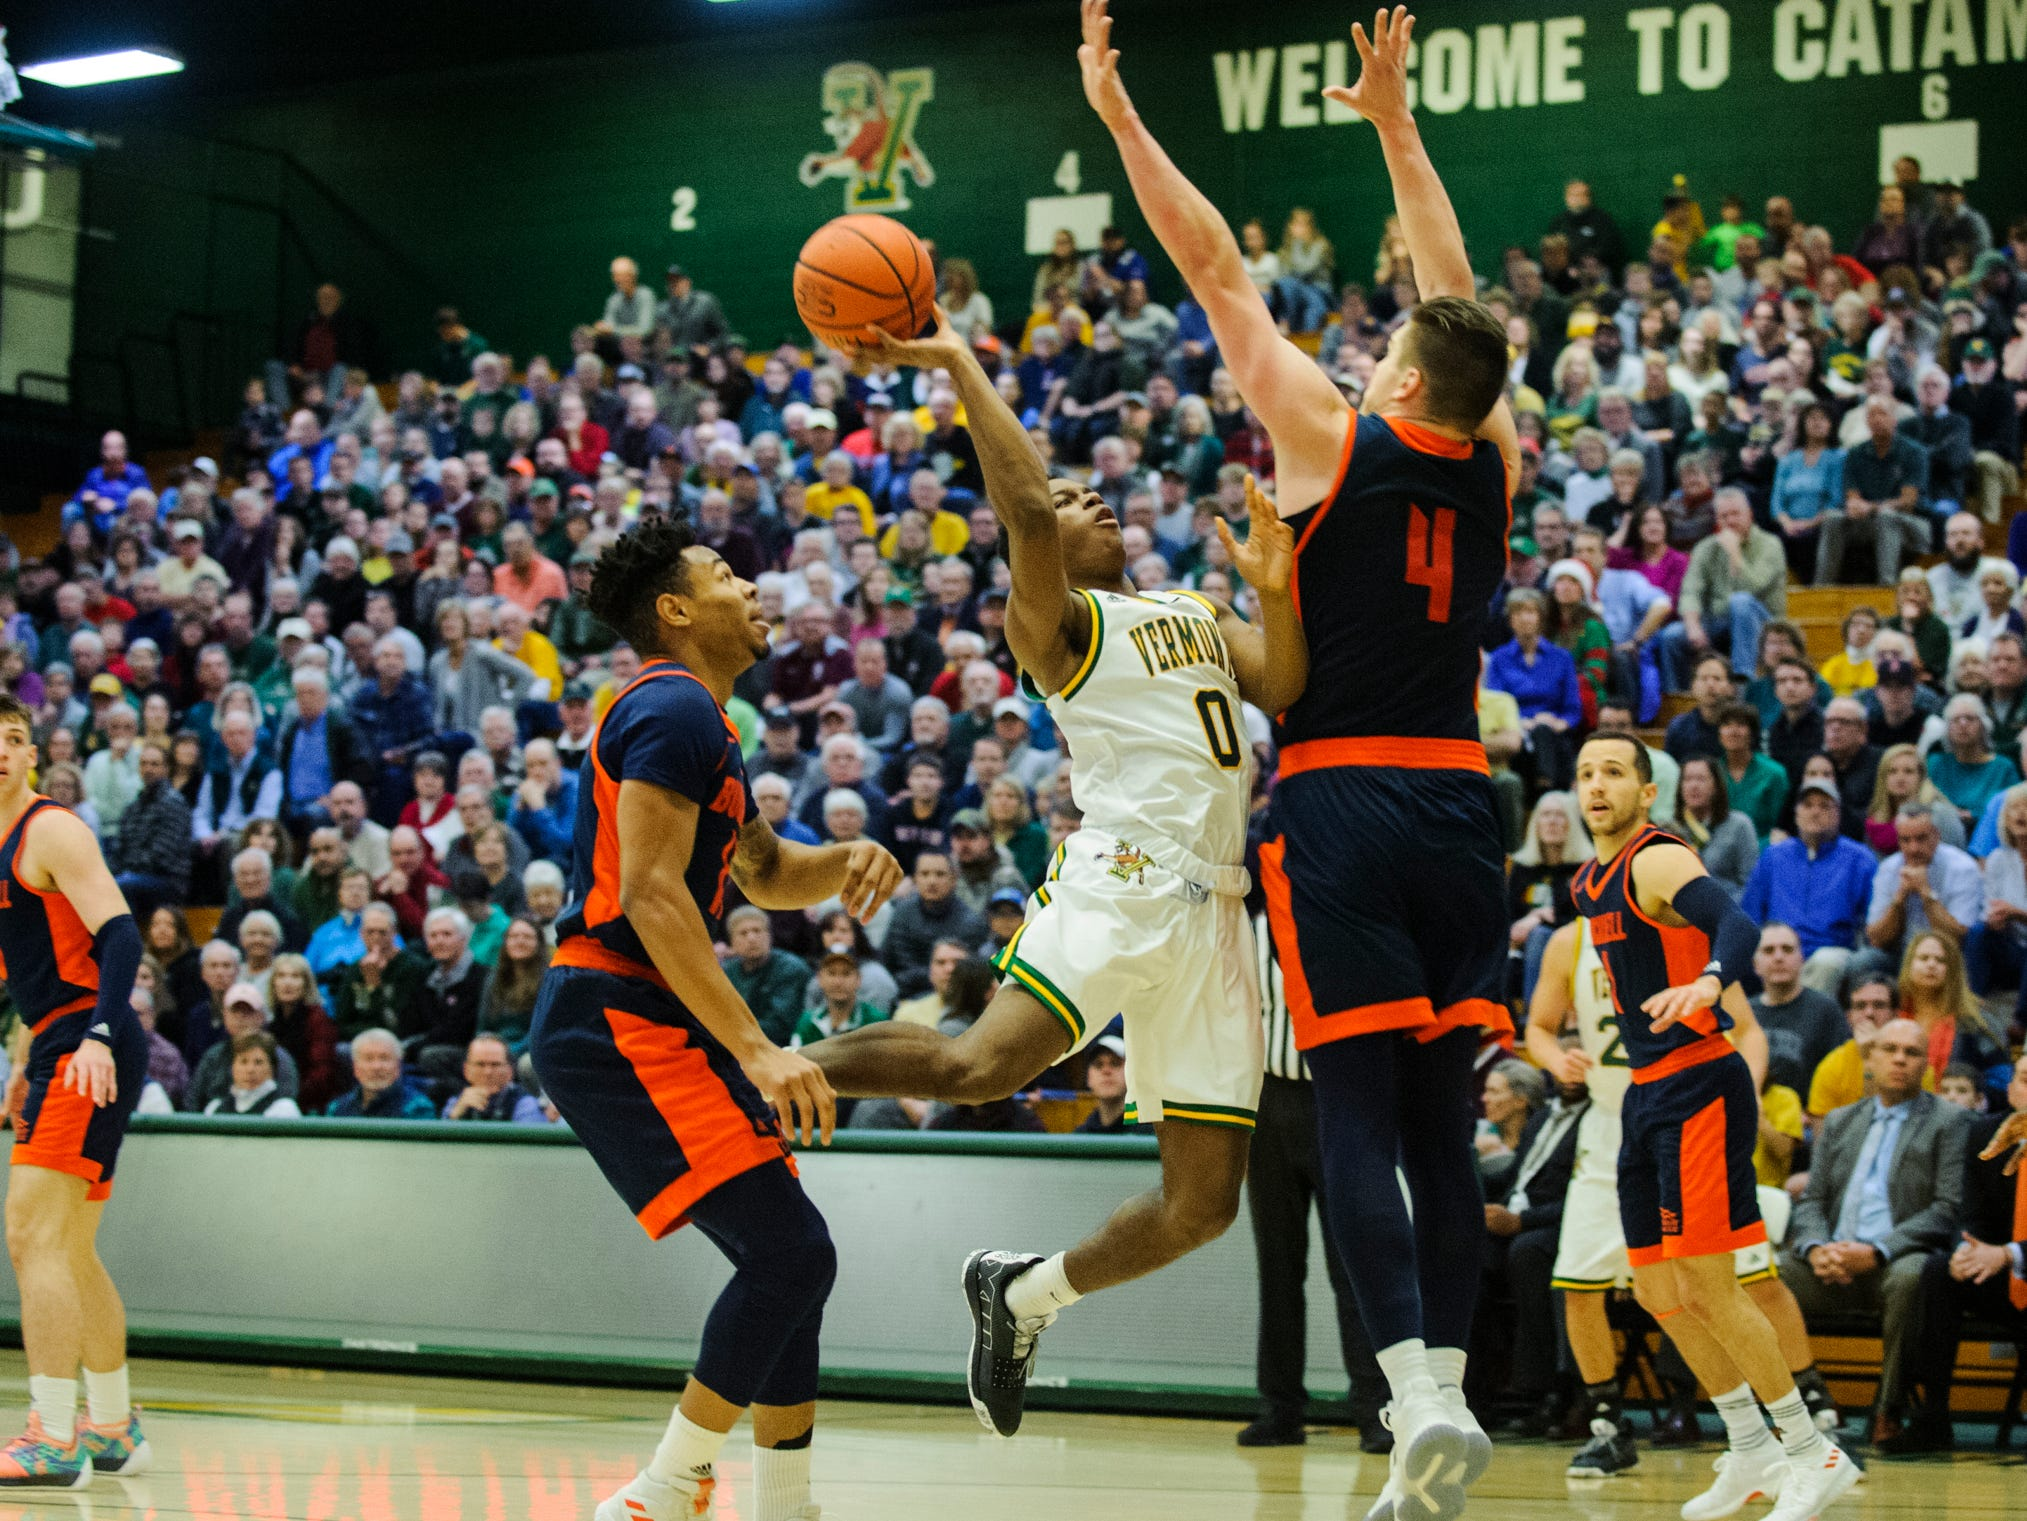 Vermont guard Stef Smith (0) takes a shot during the men's basketball game between the Bucknell Bison and the Vermont Catamounts at Patrick Gym on Sunday afternoon November 25, 2018 in Burlington.